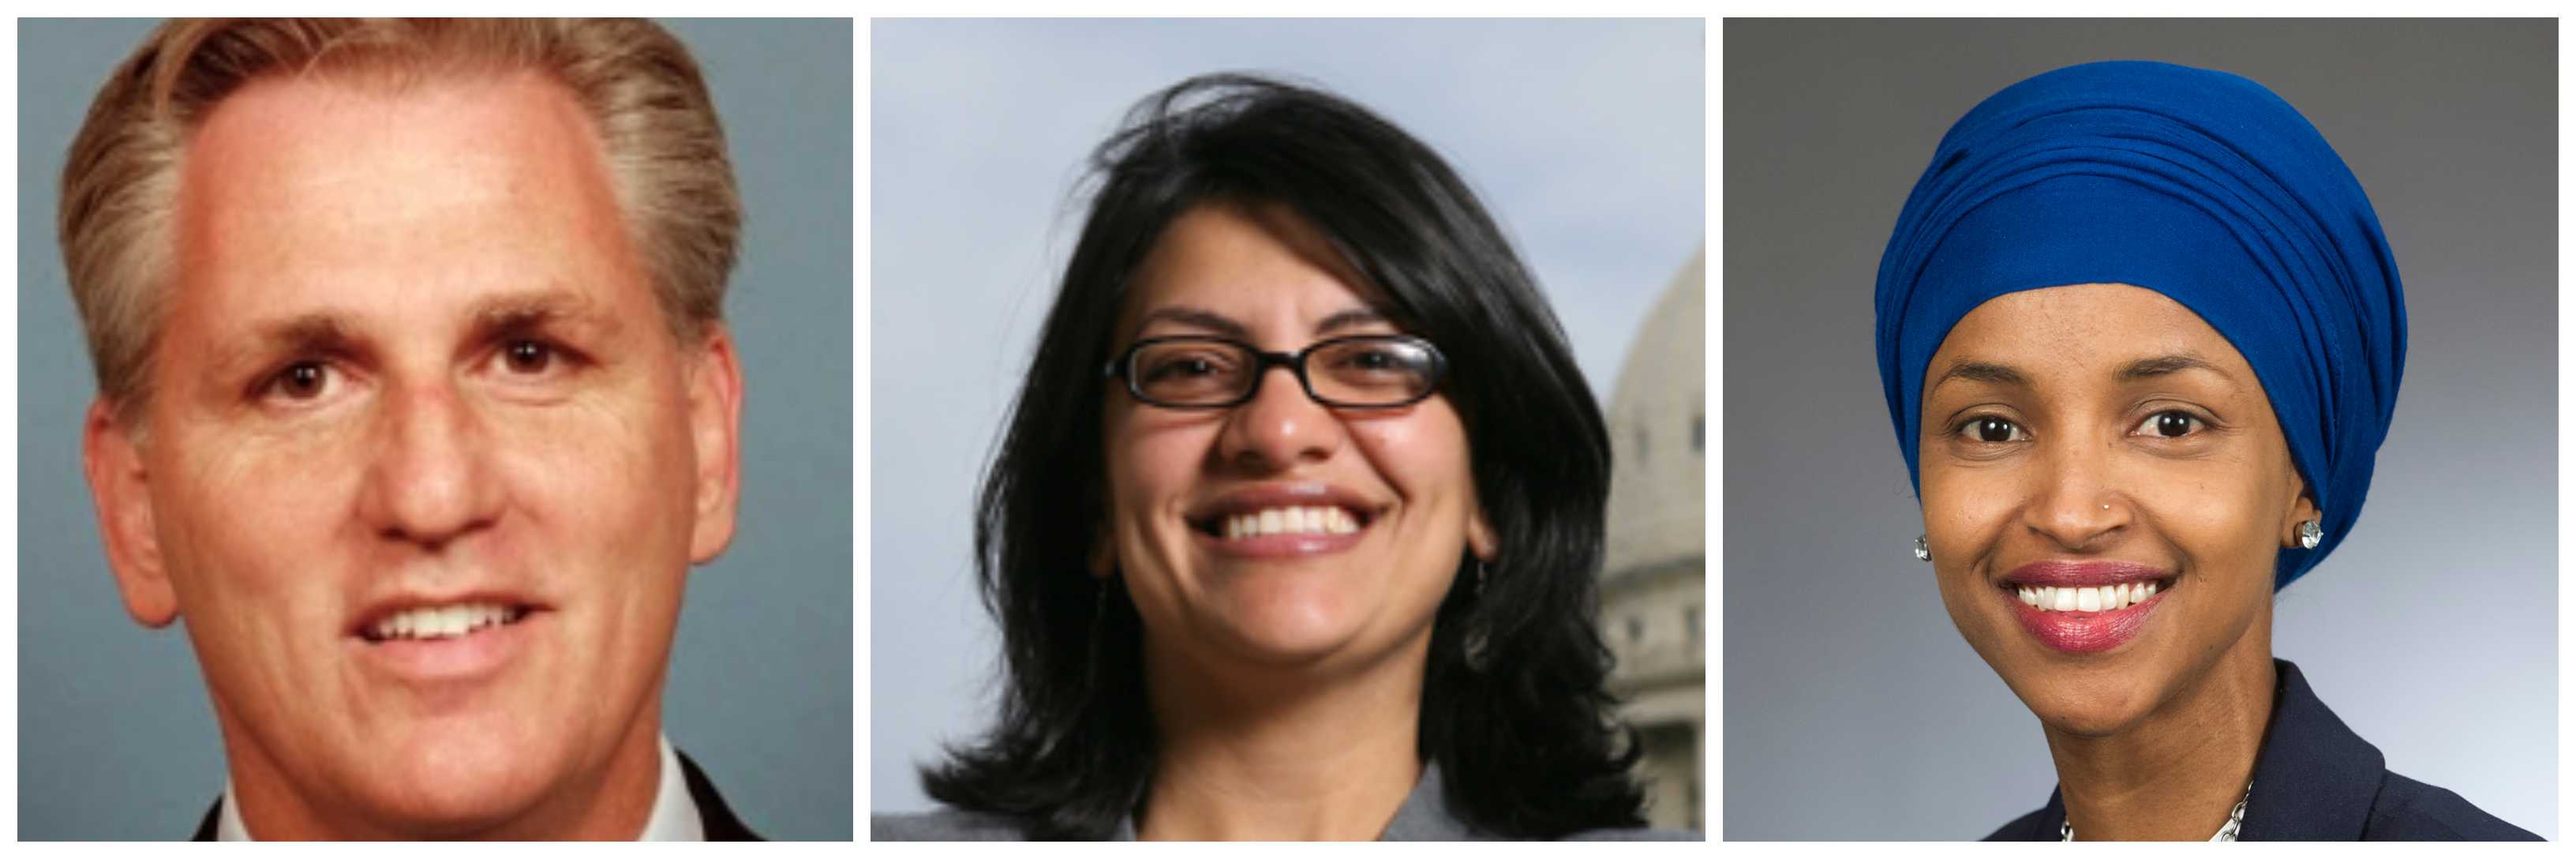 """Some American Jews have found it shocking that no action has been taken against Freshman Democrats Rashida Tlaib of Michigan and Ilhan Omar of Minnesota. The former accused American Jews of dual loyalty, an age-old canard. The latter suggested that Israel was evil and had """"hypnotized"""" the world. While Democrats have been slow to condemn these expressions of antisemitism, a Republican leader in the U.S. House of Representatives has now pledged to take action, if the Democratic majority fails to do so. """"If they do not take action I think you'll see action from myself,"""" said Kevin McCarthy of California. The minority leader, according to Capitol Hill reporters writing in a number of publications also said, """"This cannot sustain itself. It's unacceptable in this country."""" McCarthy isn't only a man of words, you should know. He recently moved to isolate Rep. Steve King, R-Iowa, when King, long associated with white supremacists, wondered in an interview why terms like """"white supremacy"""" carried a stigma. McCarthy has suggested that statements made by Tlaib and Ilhan are worse than King's, saying not only are they equal to that offending statement, but in terms of offense, even """"more so."""" It's not clear, as of yet, what actions McCarthy might take against the two women."""